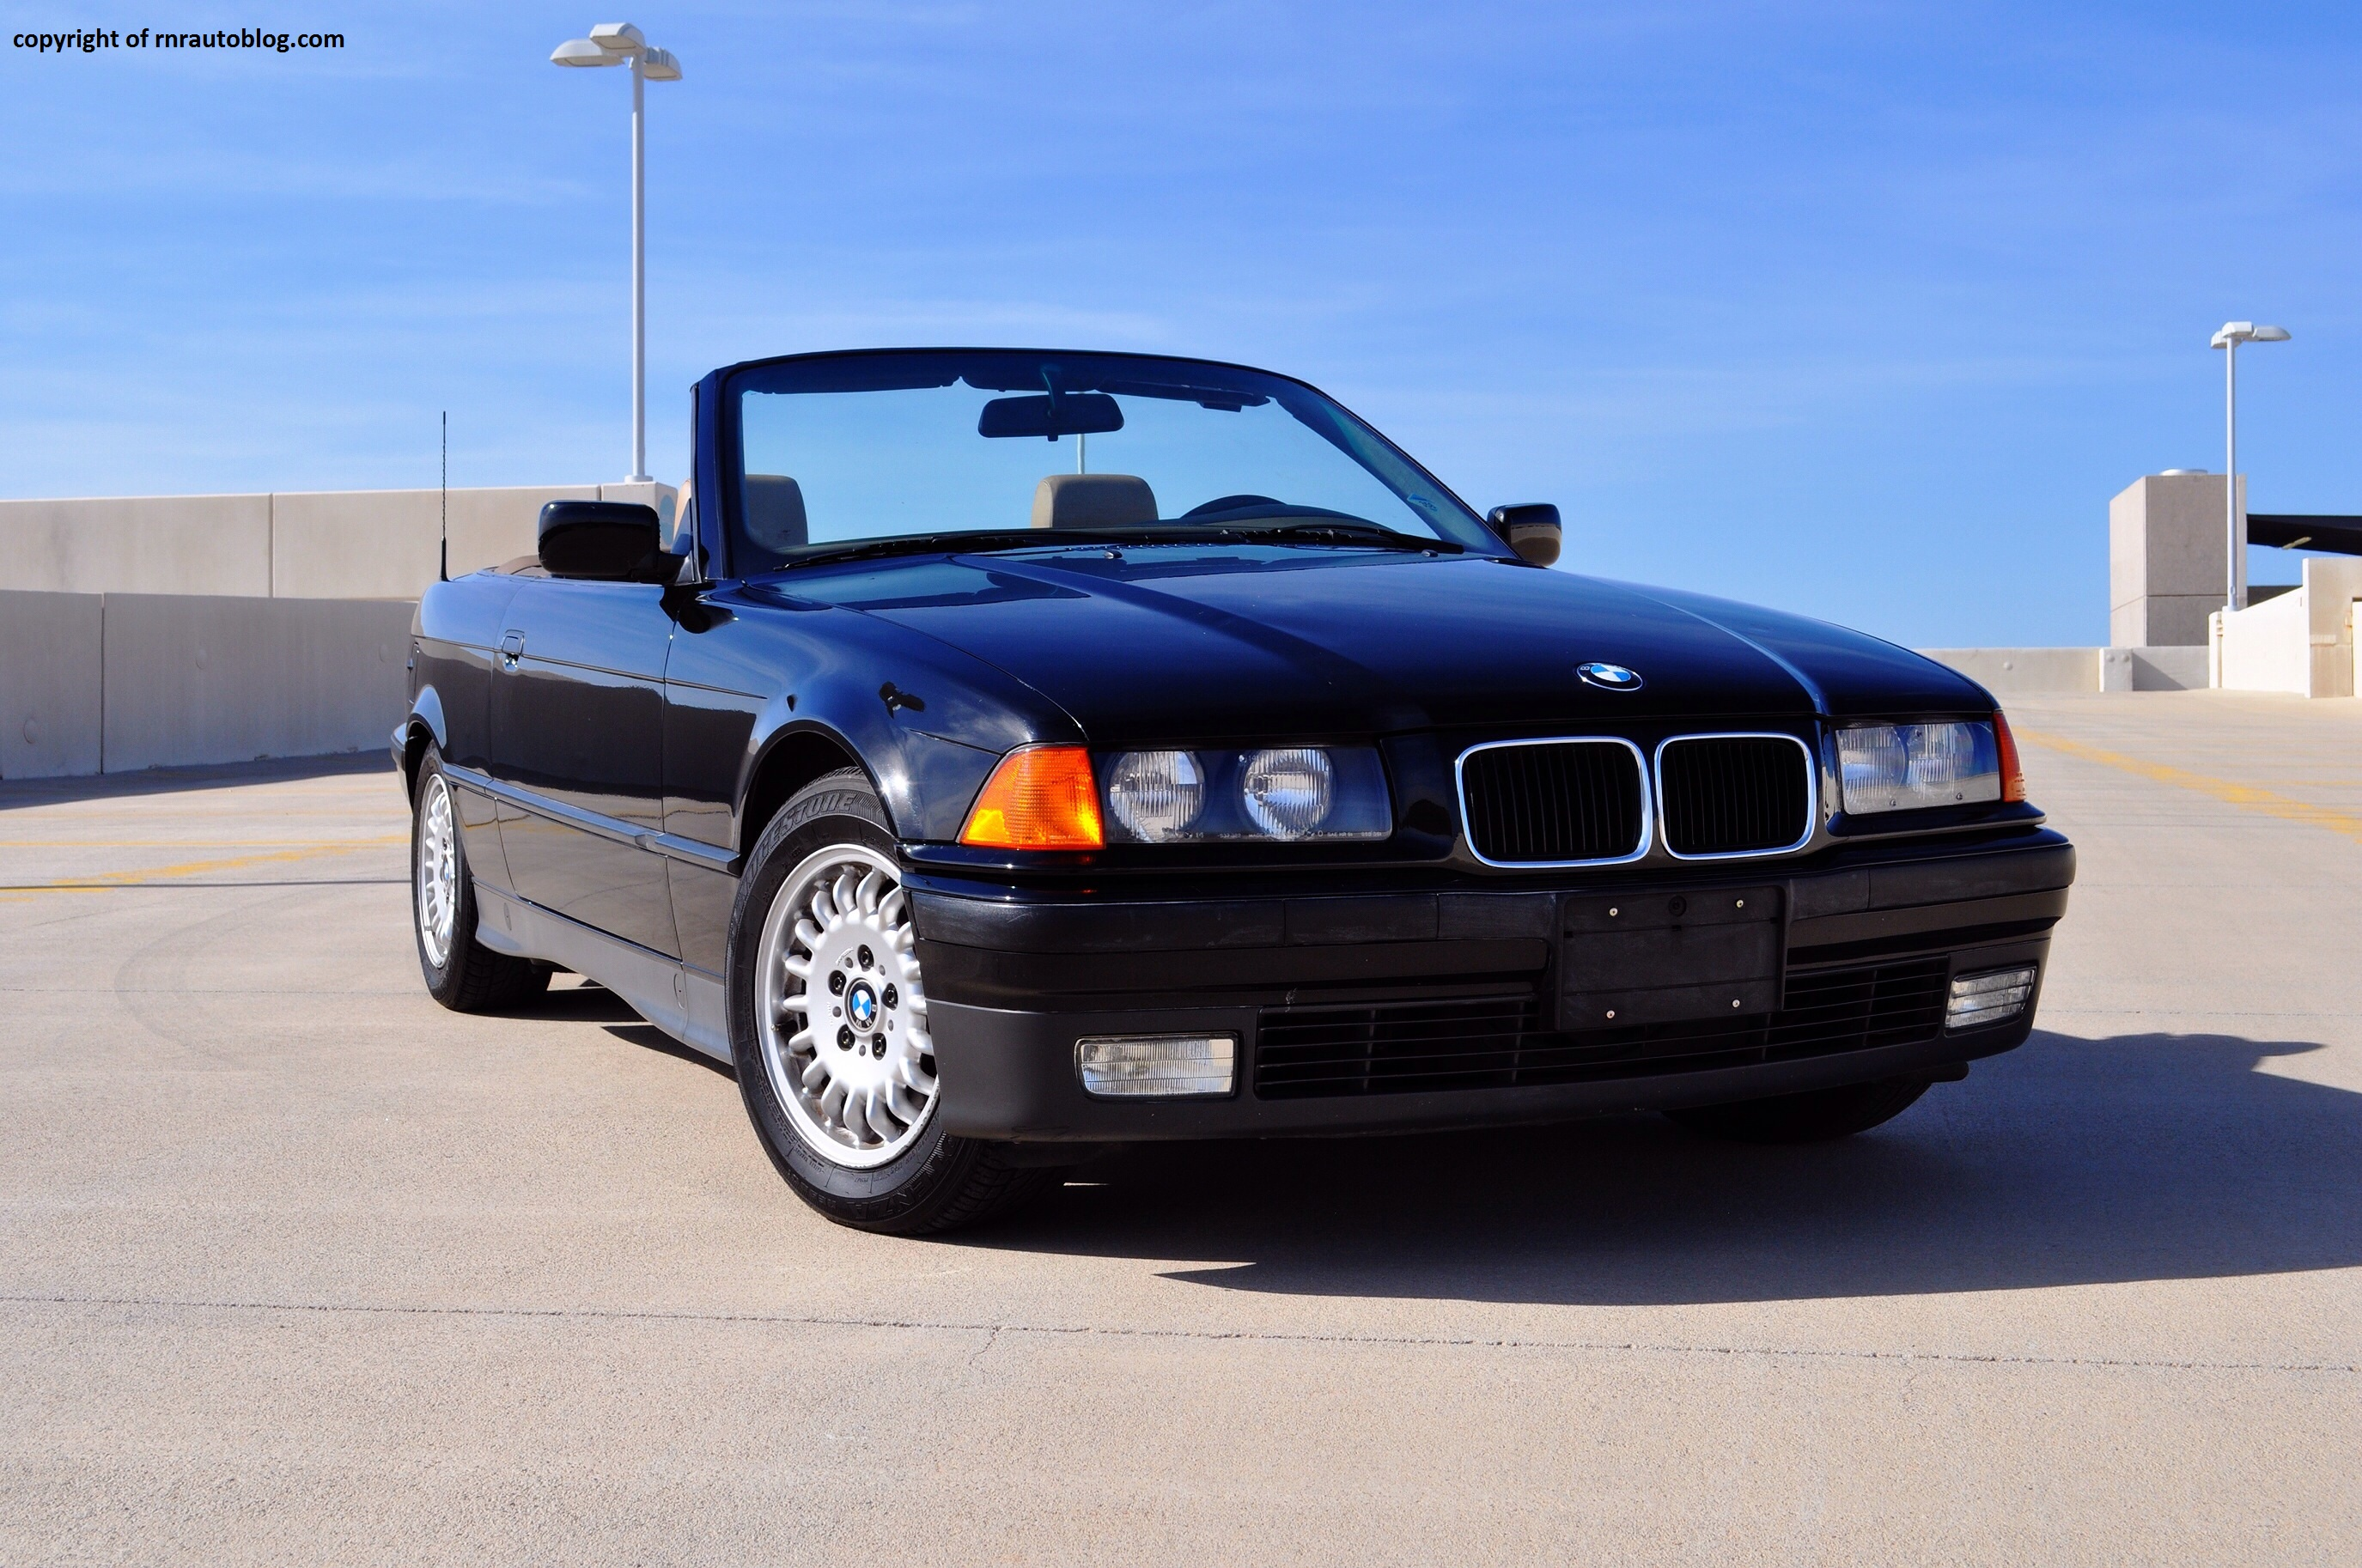 1994 Bmw 325i Convertible Review Rnr Automotive Blog